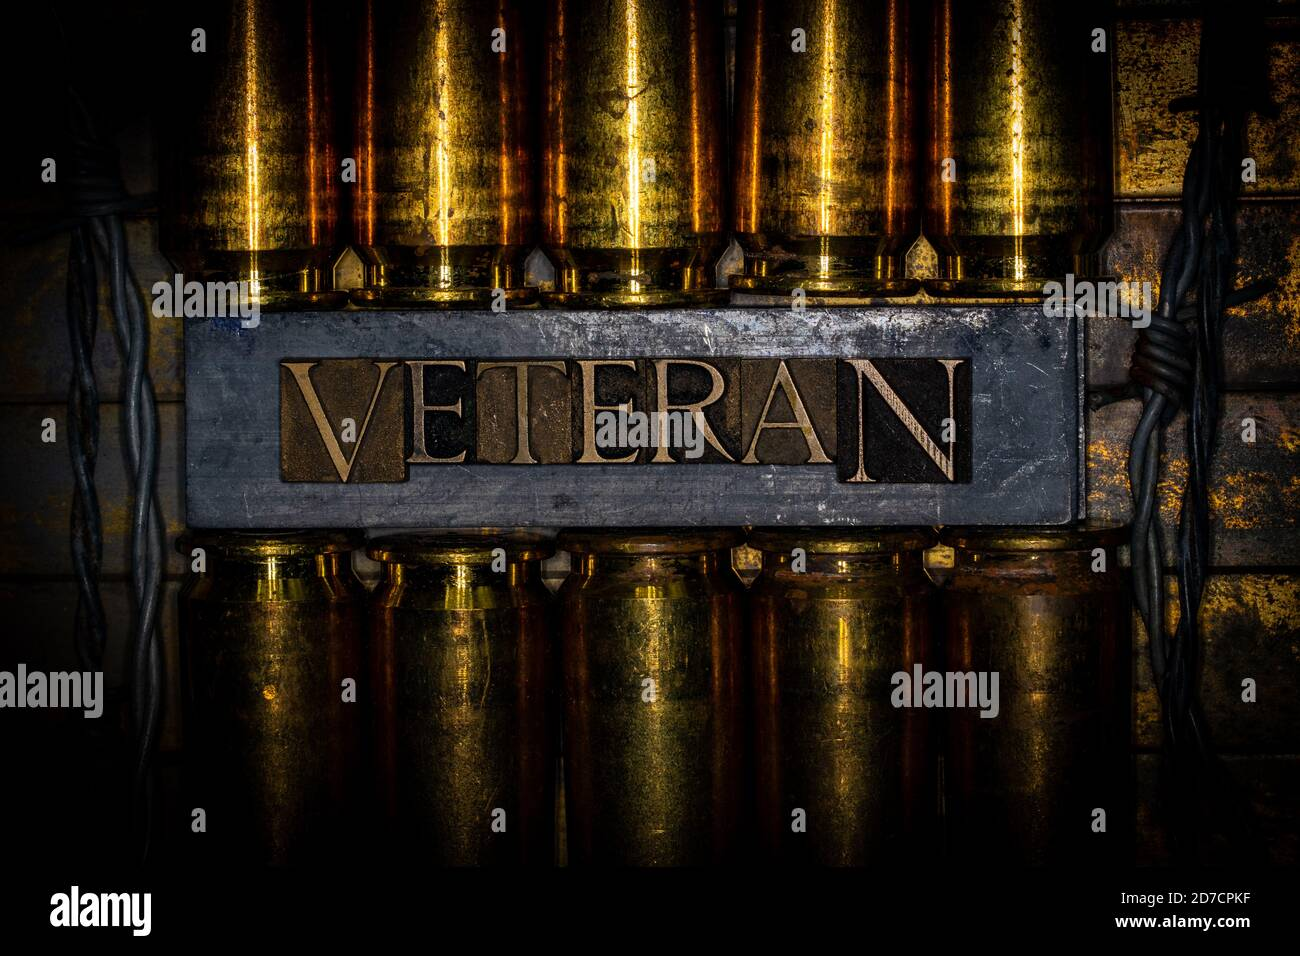 Veteran text message transposed on lead bars over copper 50 caliber gun casings on vintage textured grunge copper and gold background Stock Photo